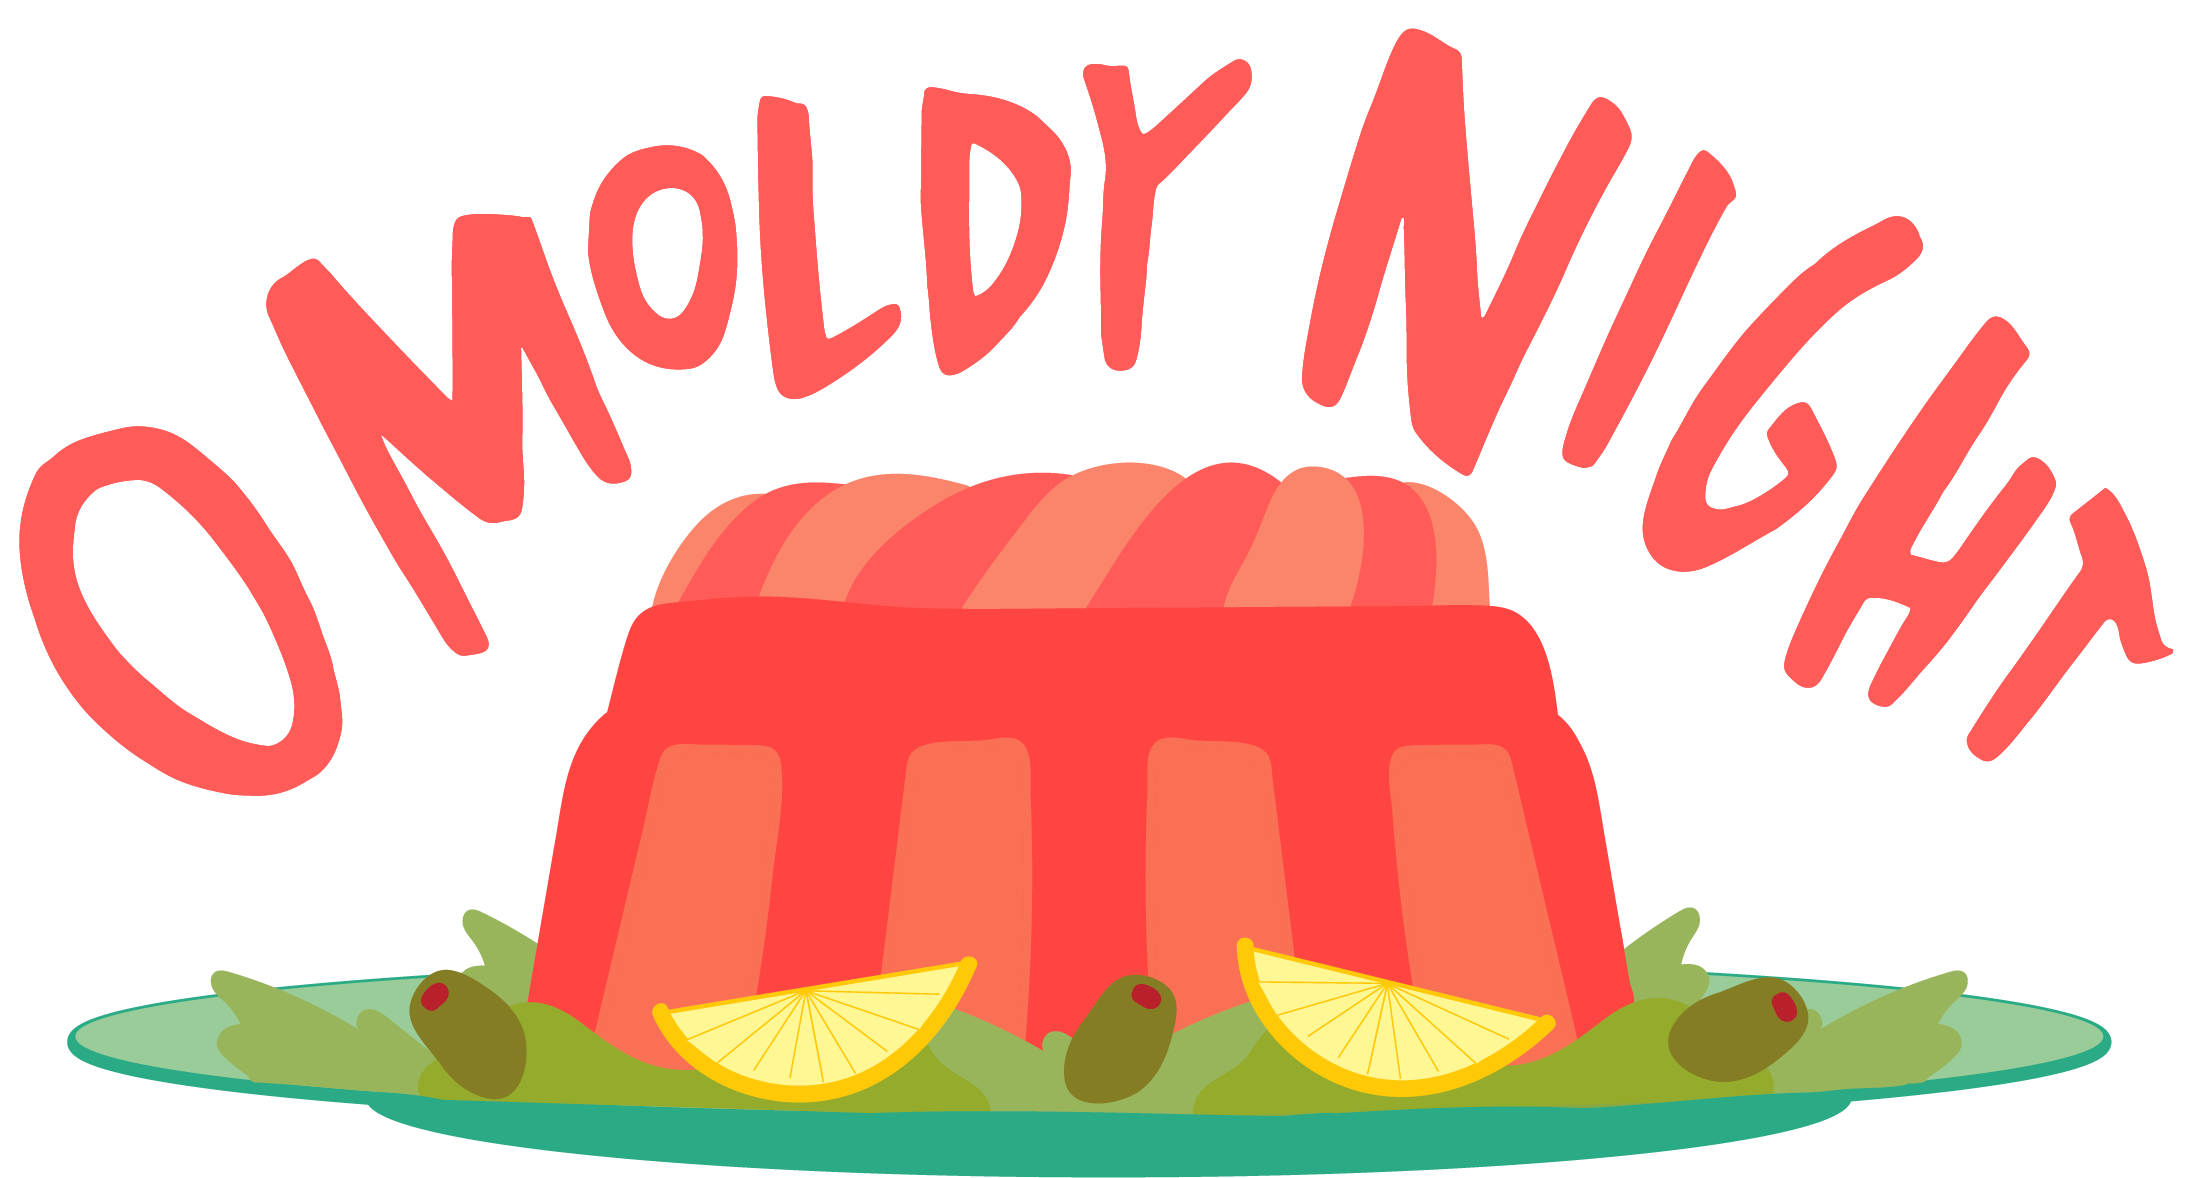 o-moldy-night-top.png